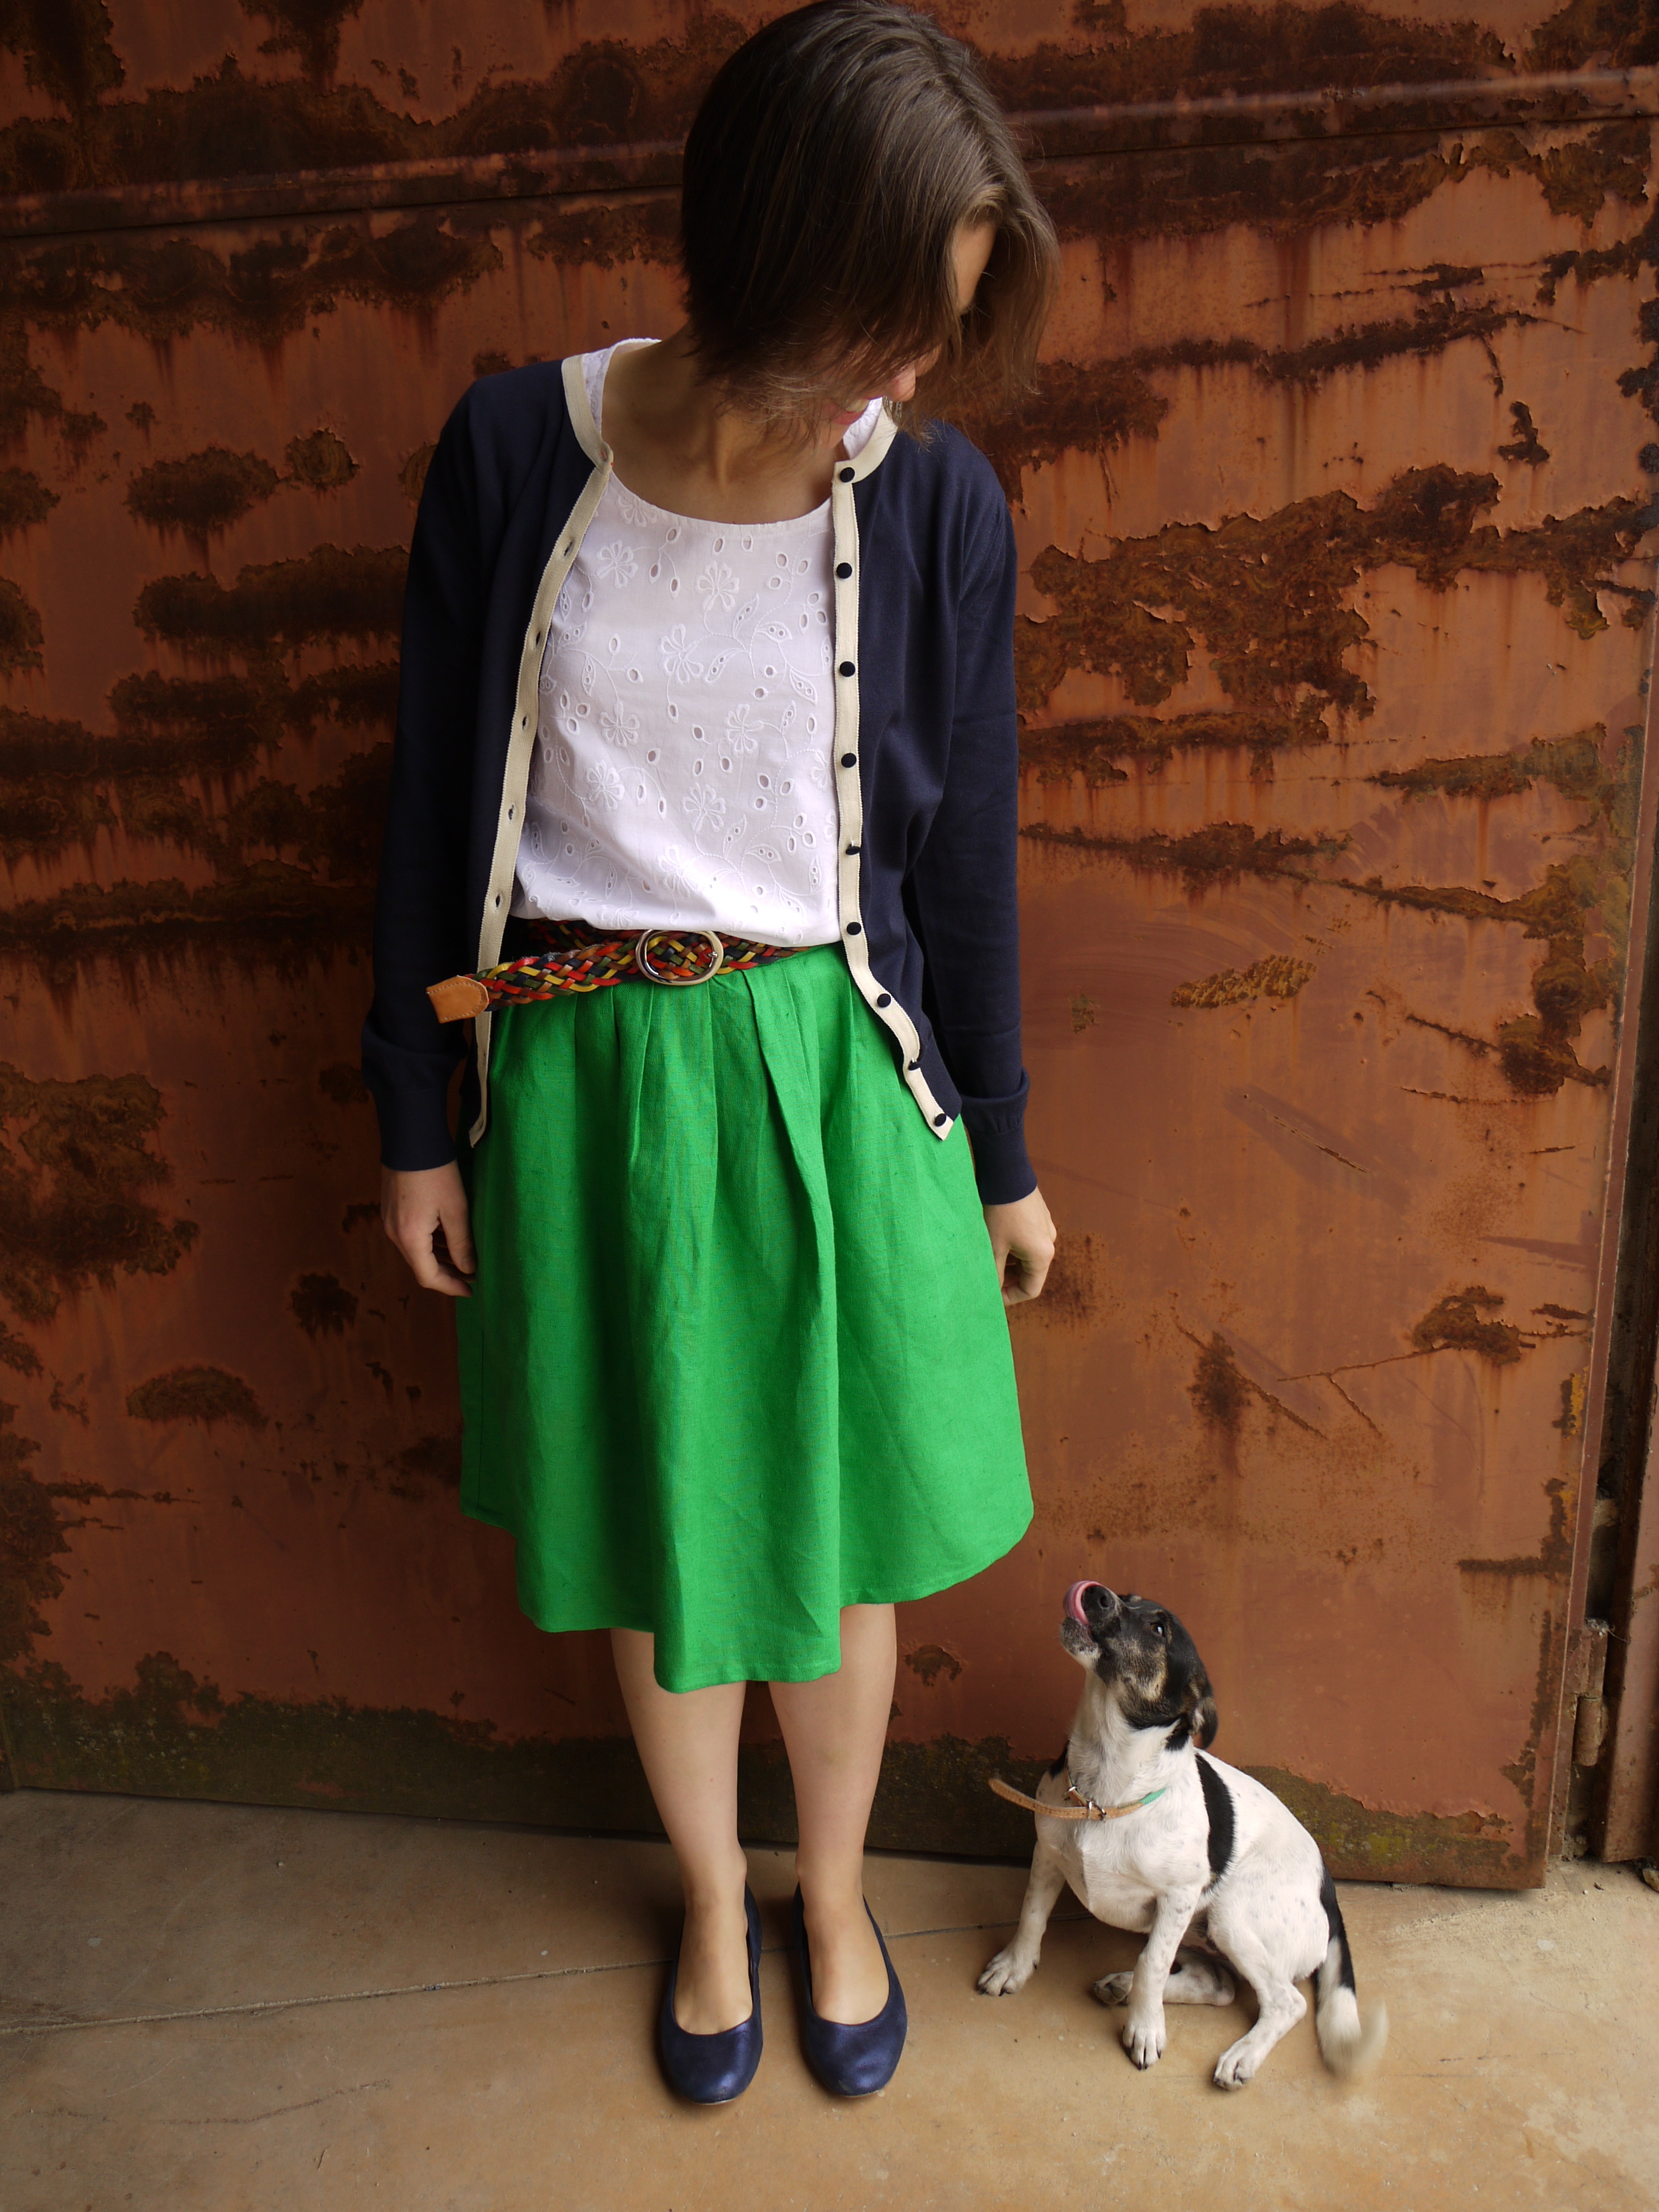 Grainline Studio Scout tee and Simplicity skirt